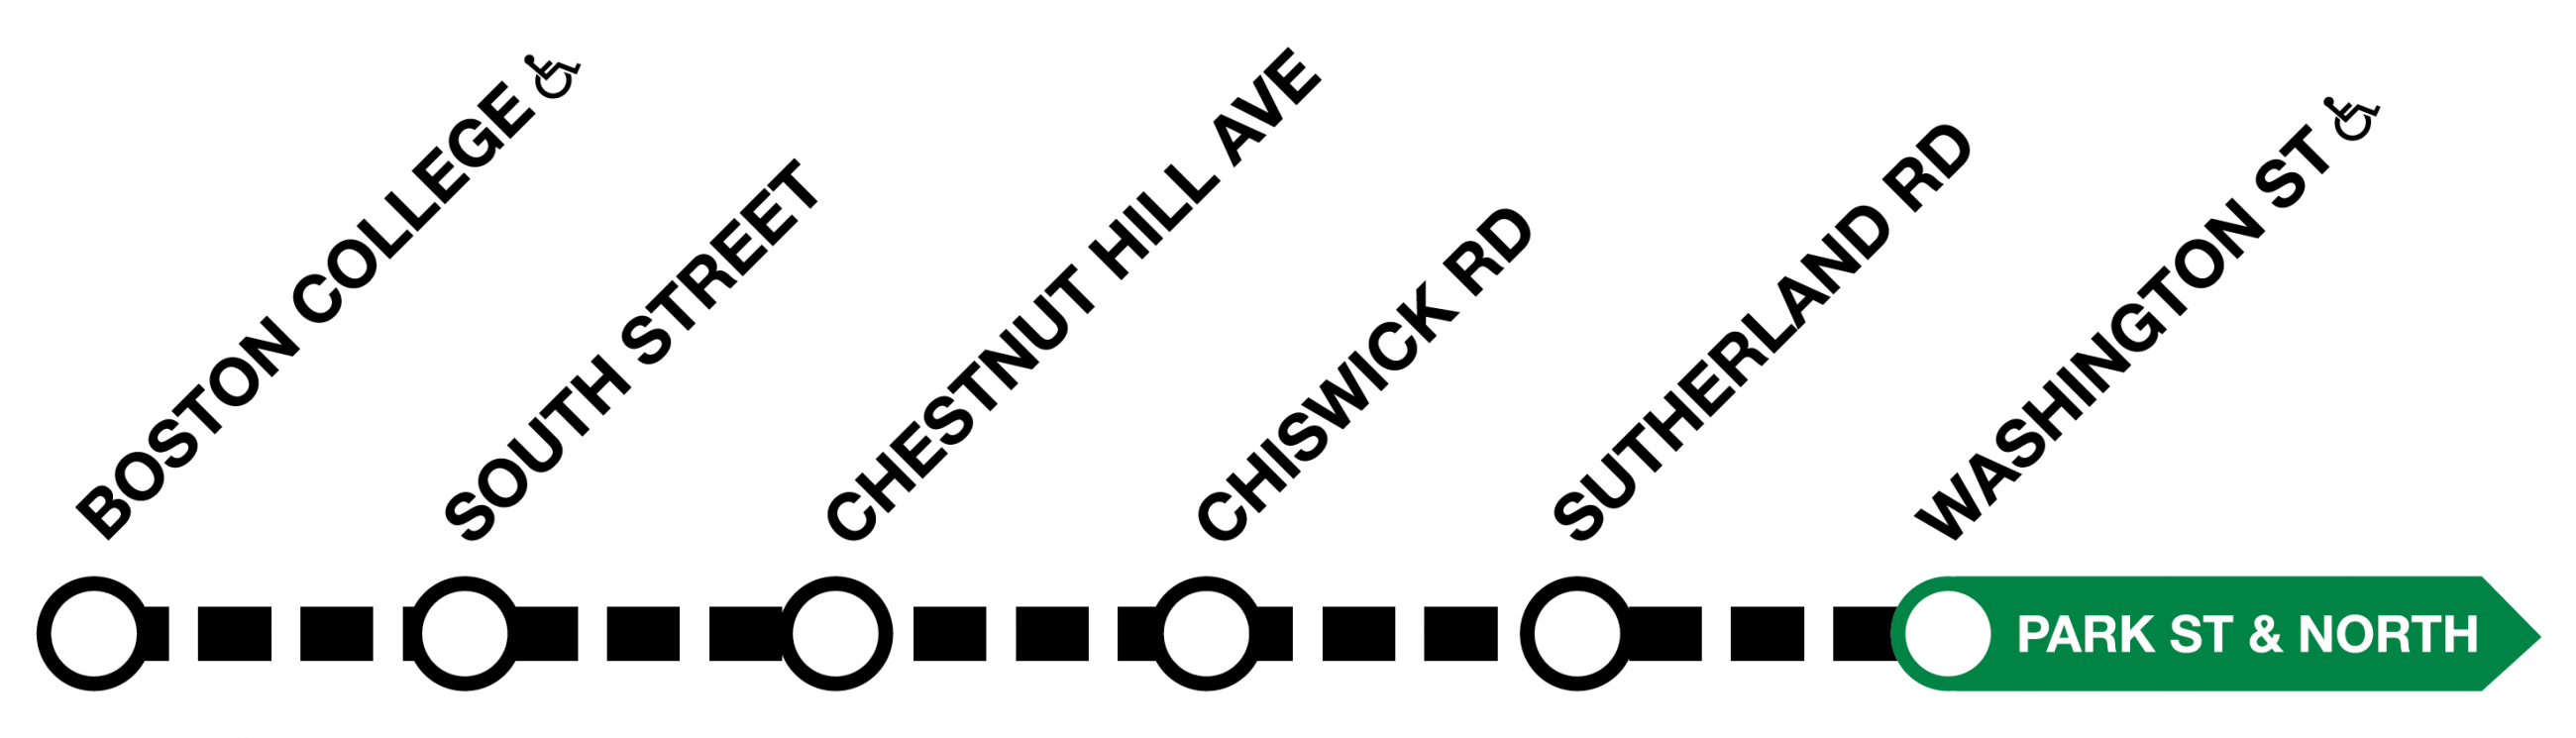 Line graphic of Green Line, showing shuttle service will run between Boston College and Washington